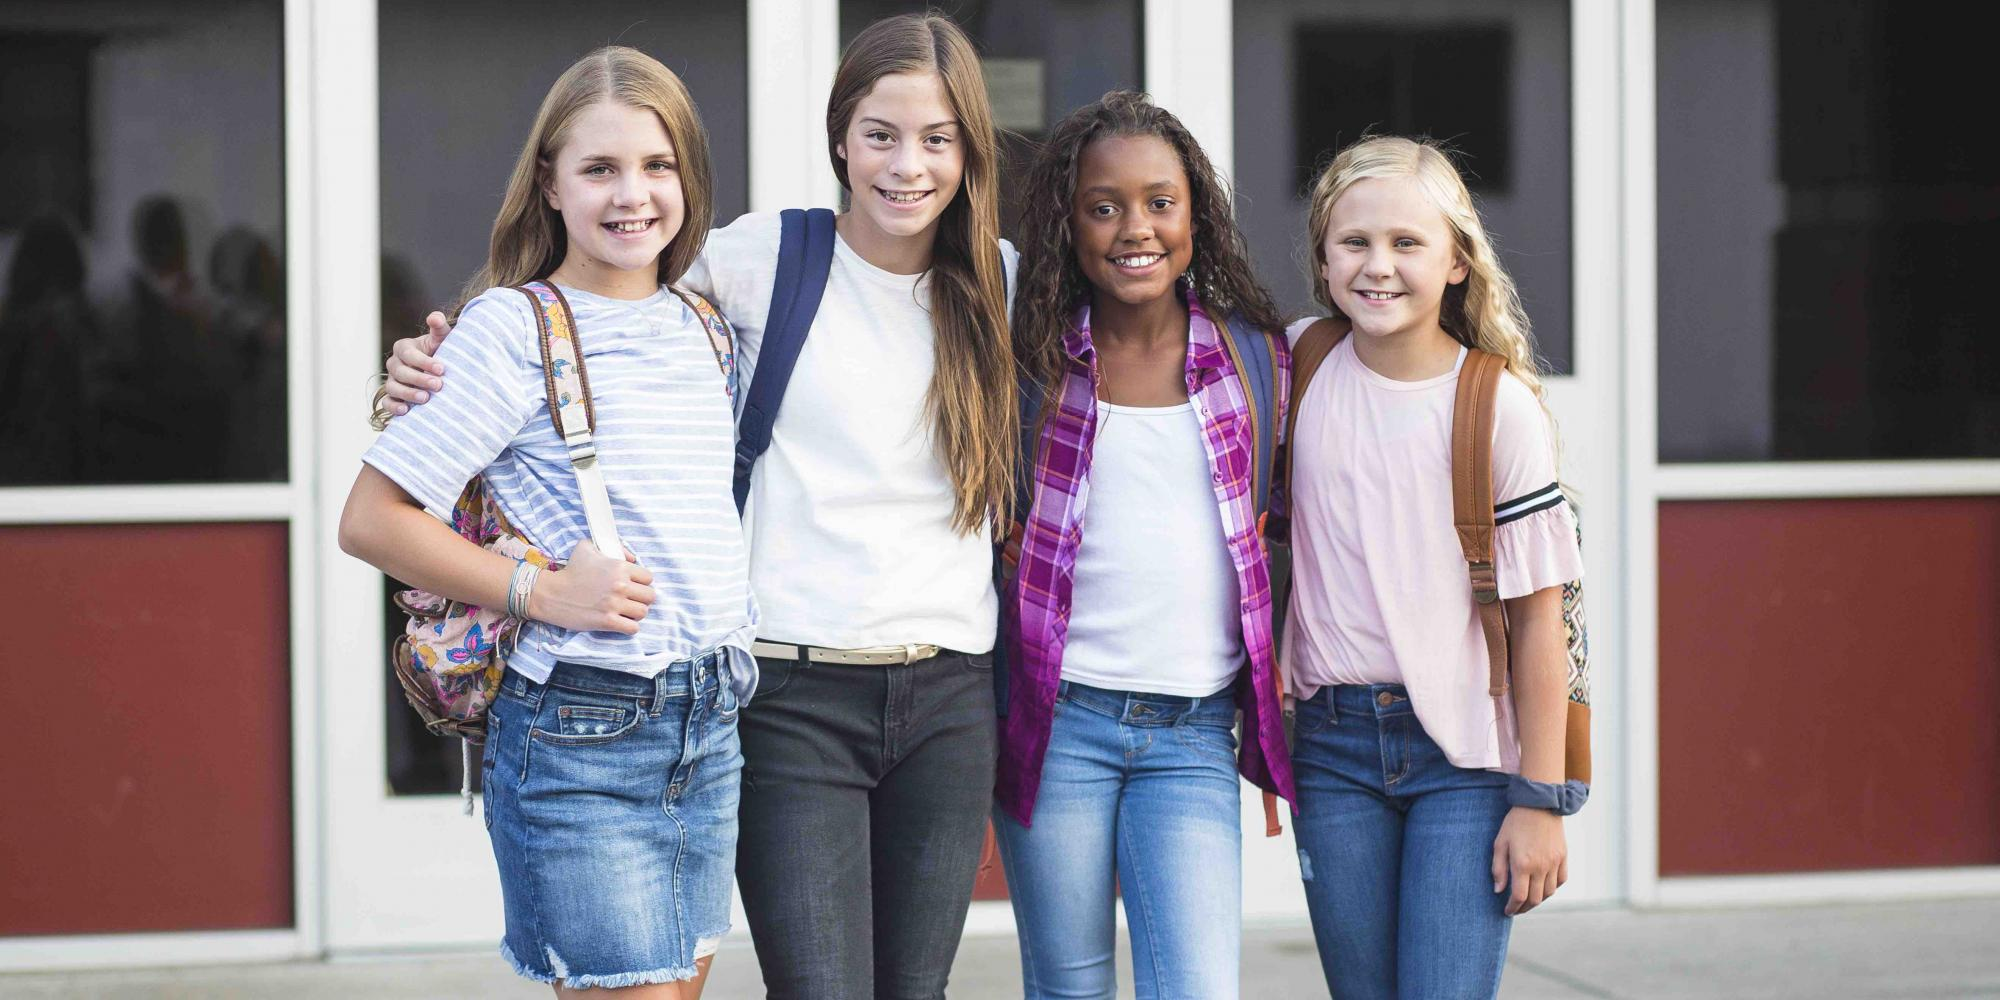 Tween Beauty Products Are The Latest Back-To-School Must-Haves